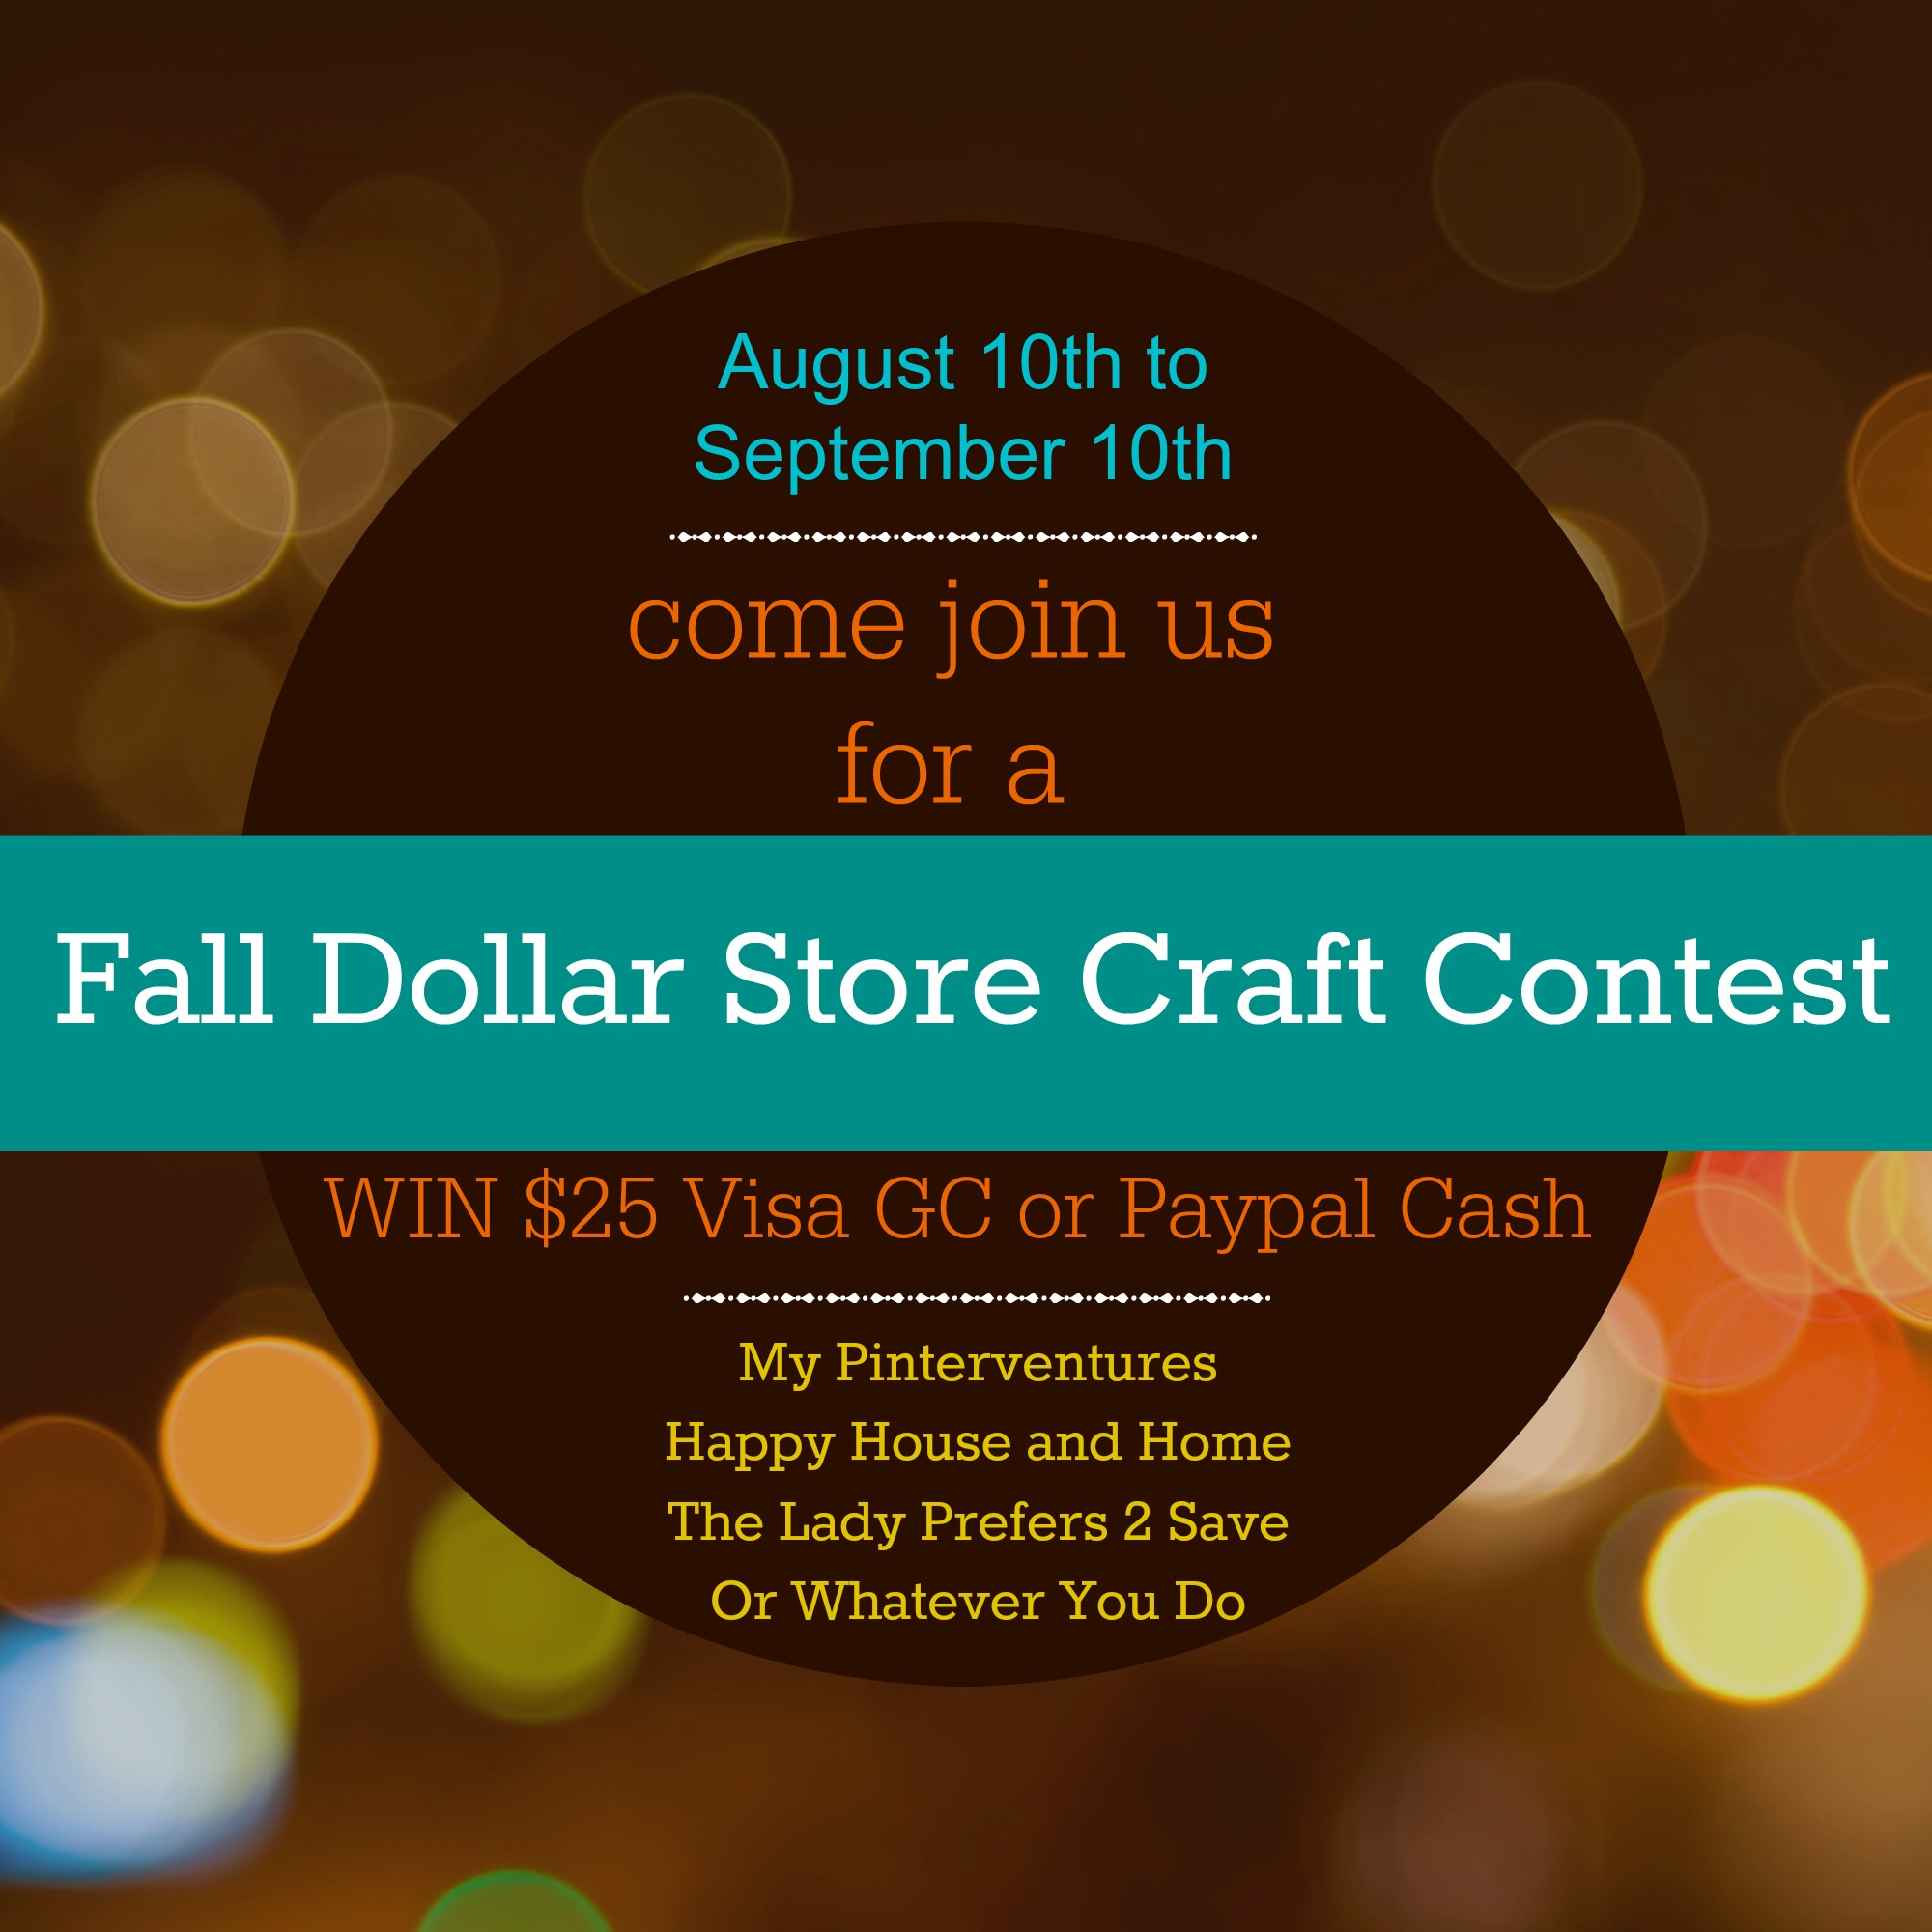 Fall Dollar Store Craft Contest